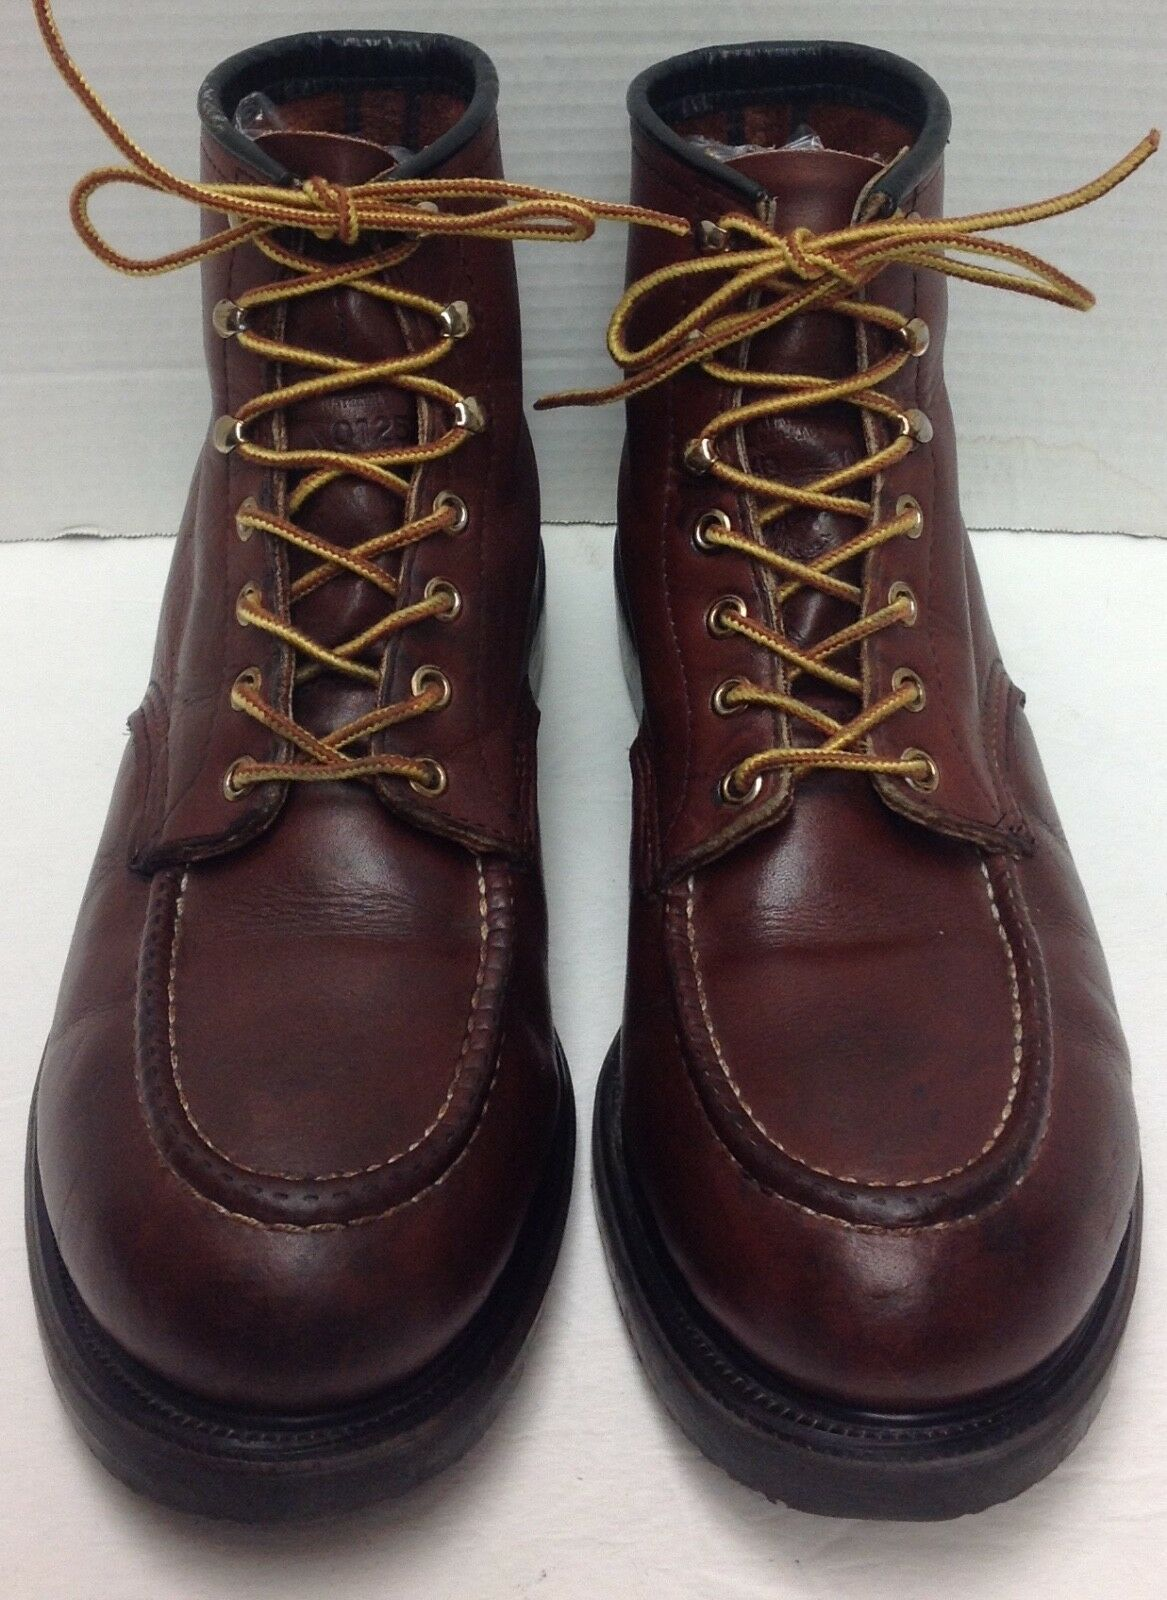 Red Wing Steel Moc Toe Safety Stivali, Brown 4439 Size 11.5 D